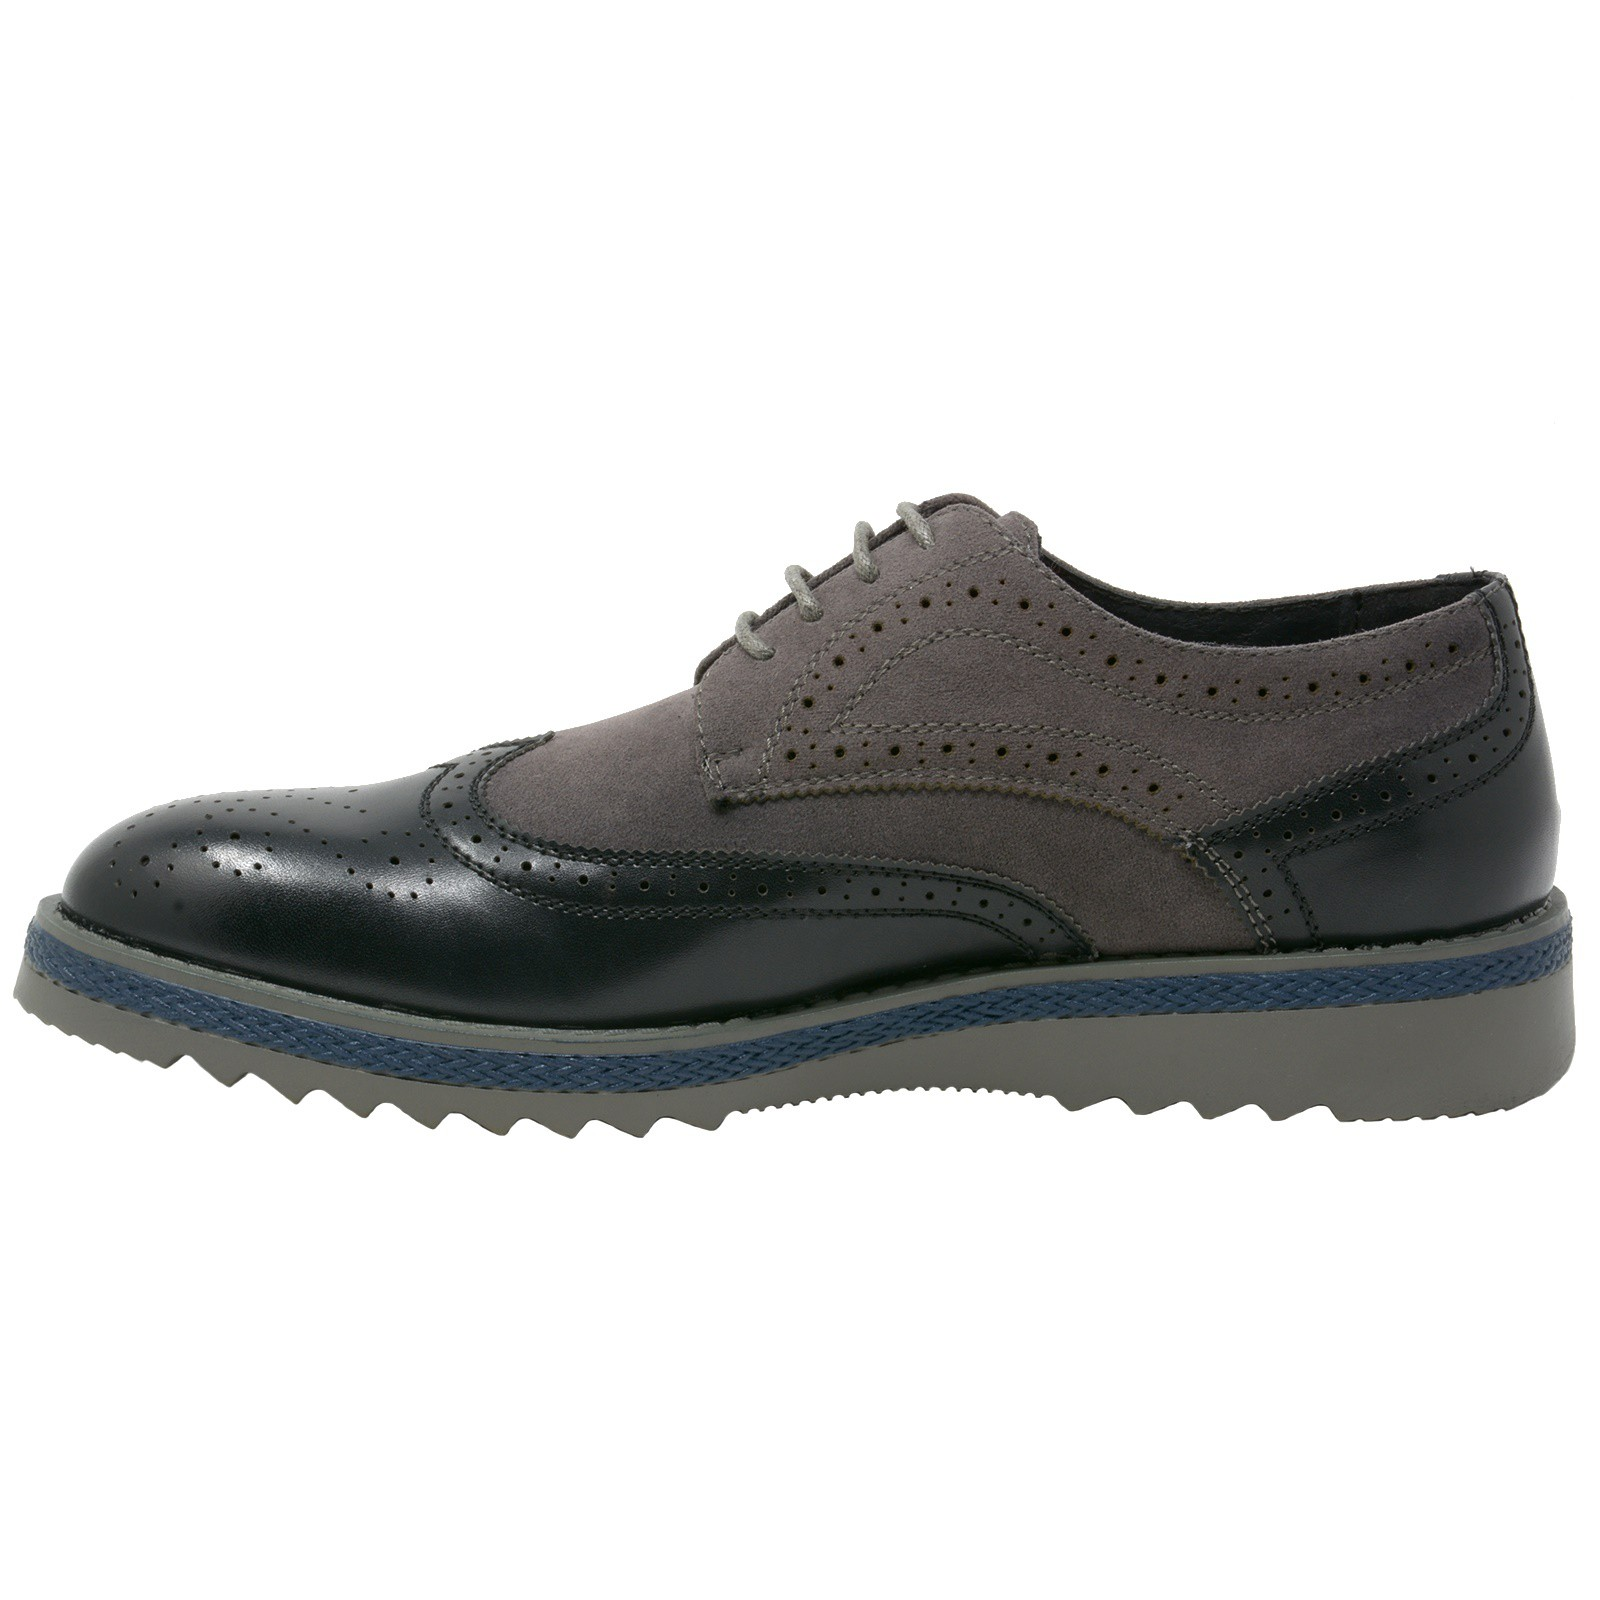 Alpine-Swiss-Alec-Mens-Wingtip-Shoes-1-5-Ripple-Sole-Leather-Insole-amp-Lining thumbnail 21